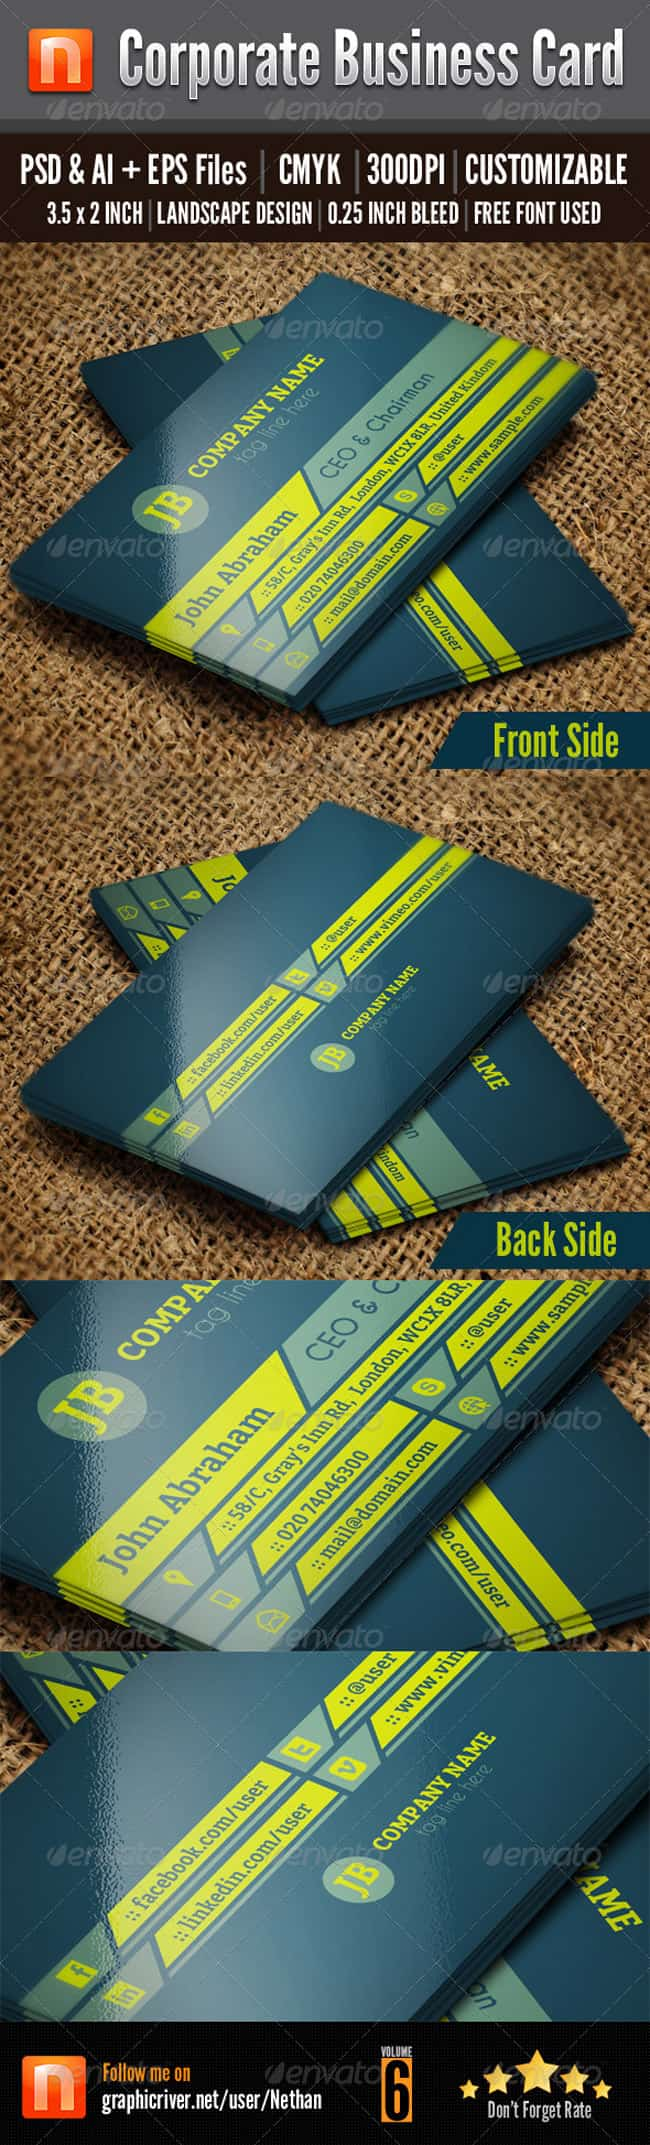 Corporate Business Card - v6